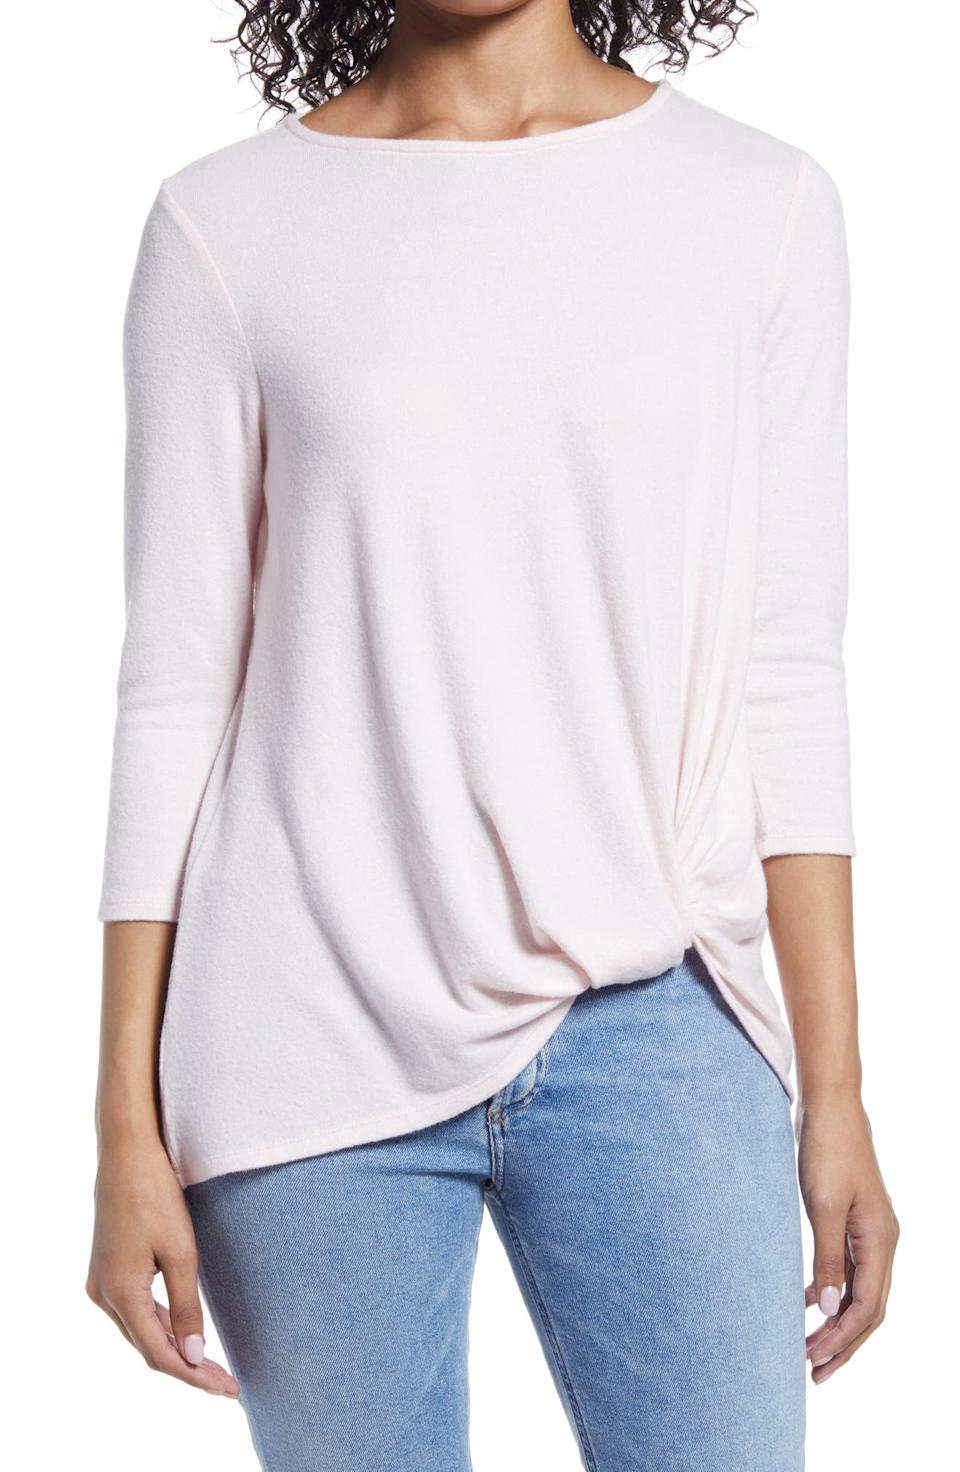 Gibson Cozy Twist Front Pullover. Image via Nordstrom.